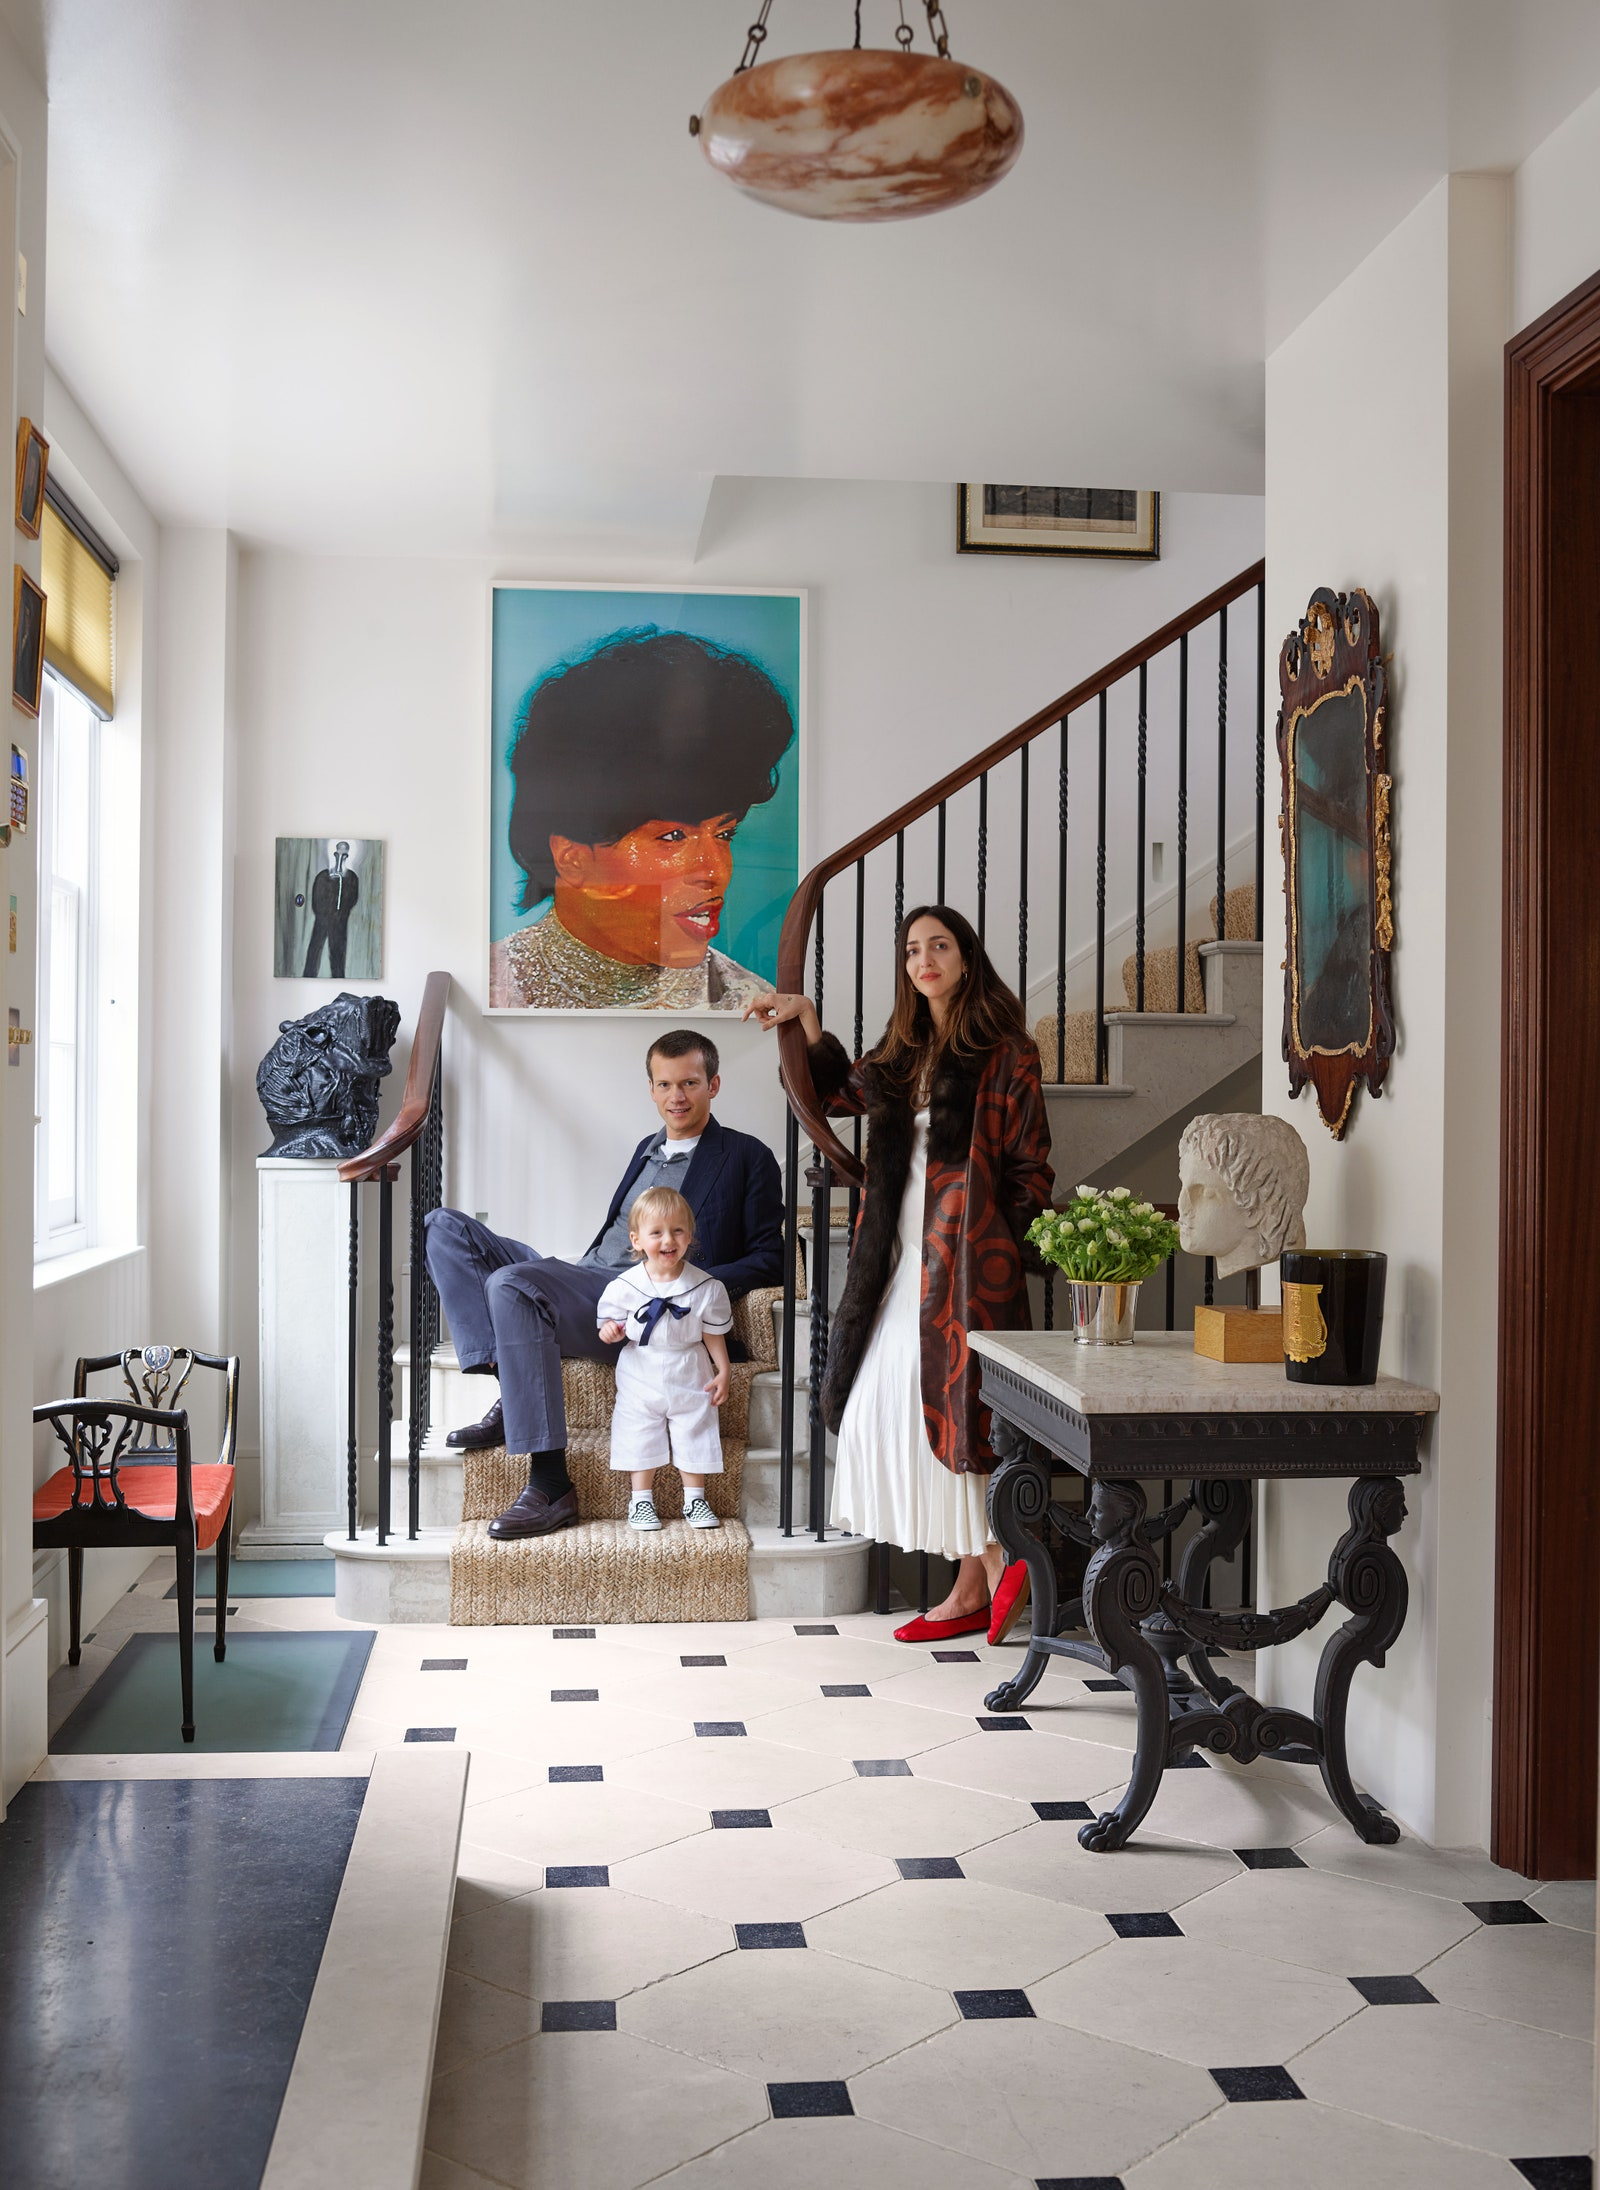 Guinness Weinstock and son Reuben in the entrance hall. The portrait of Little Richard is by Mark Leckey.